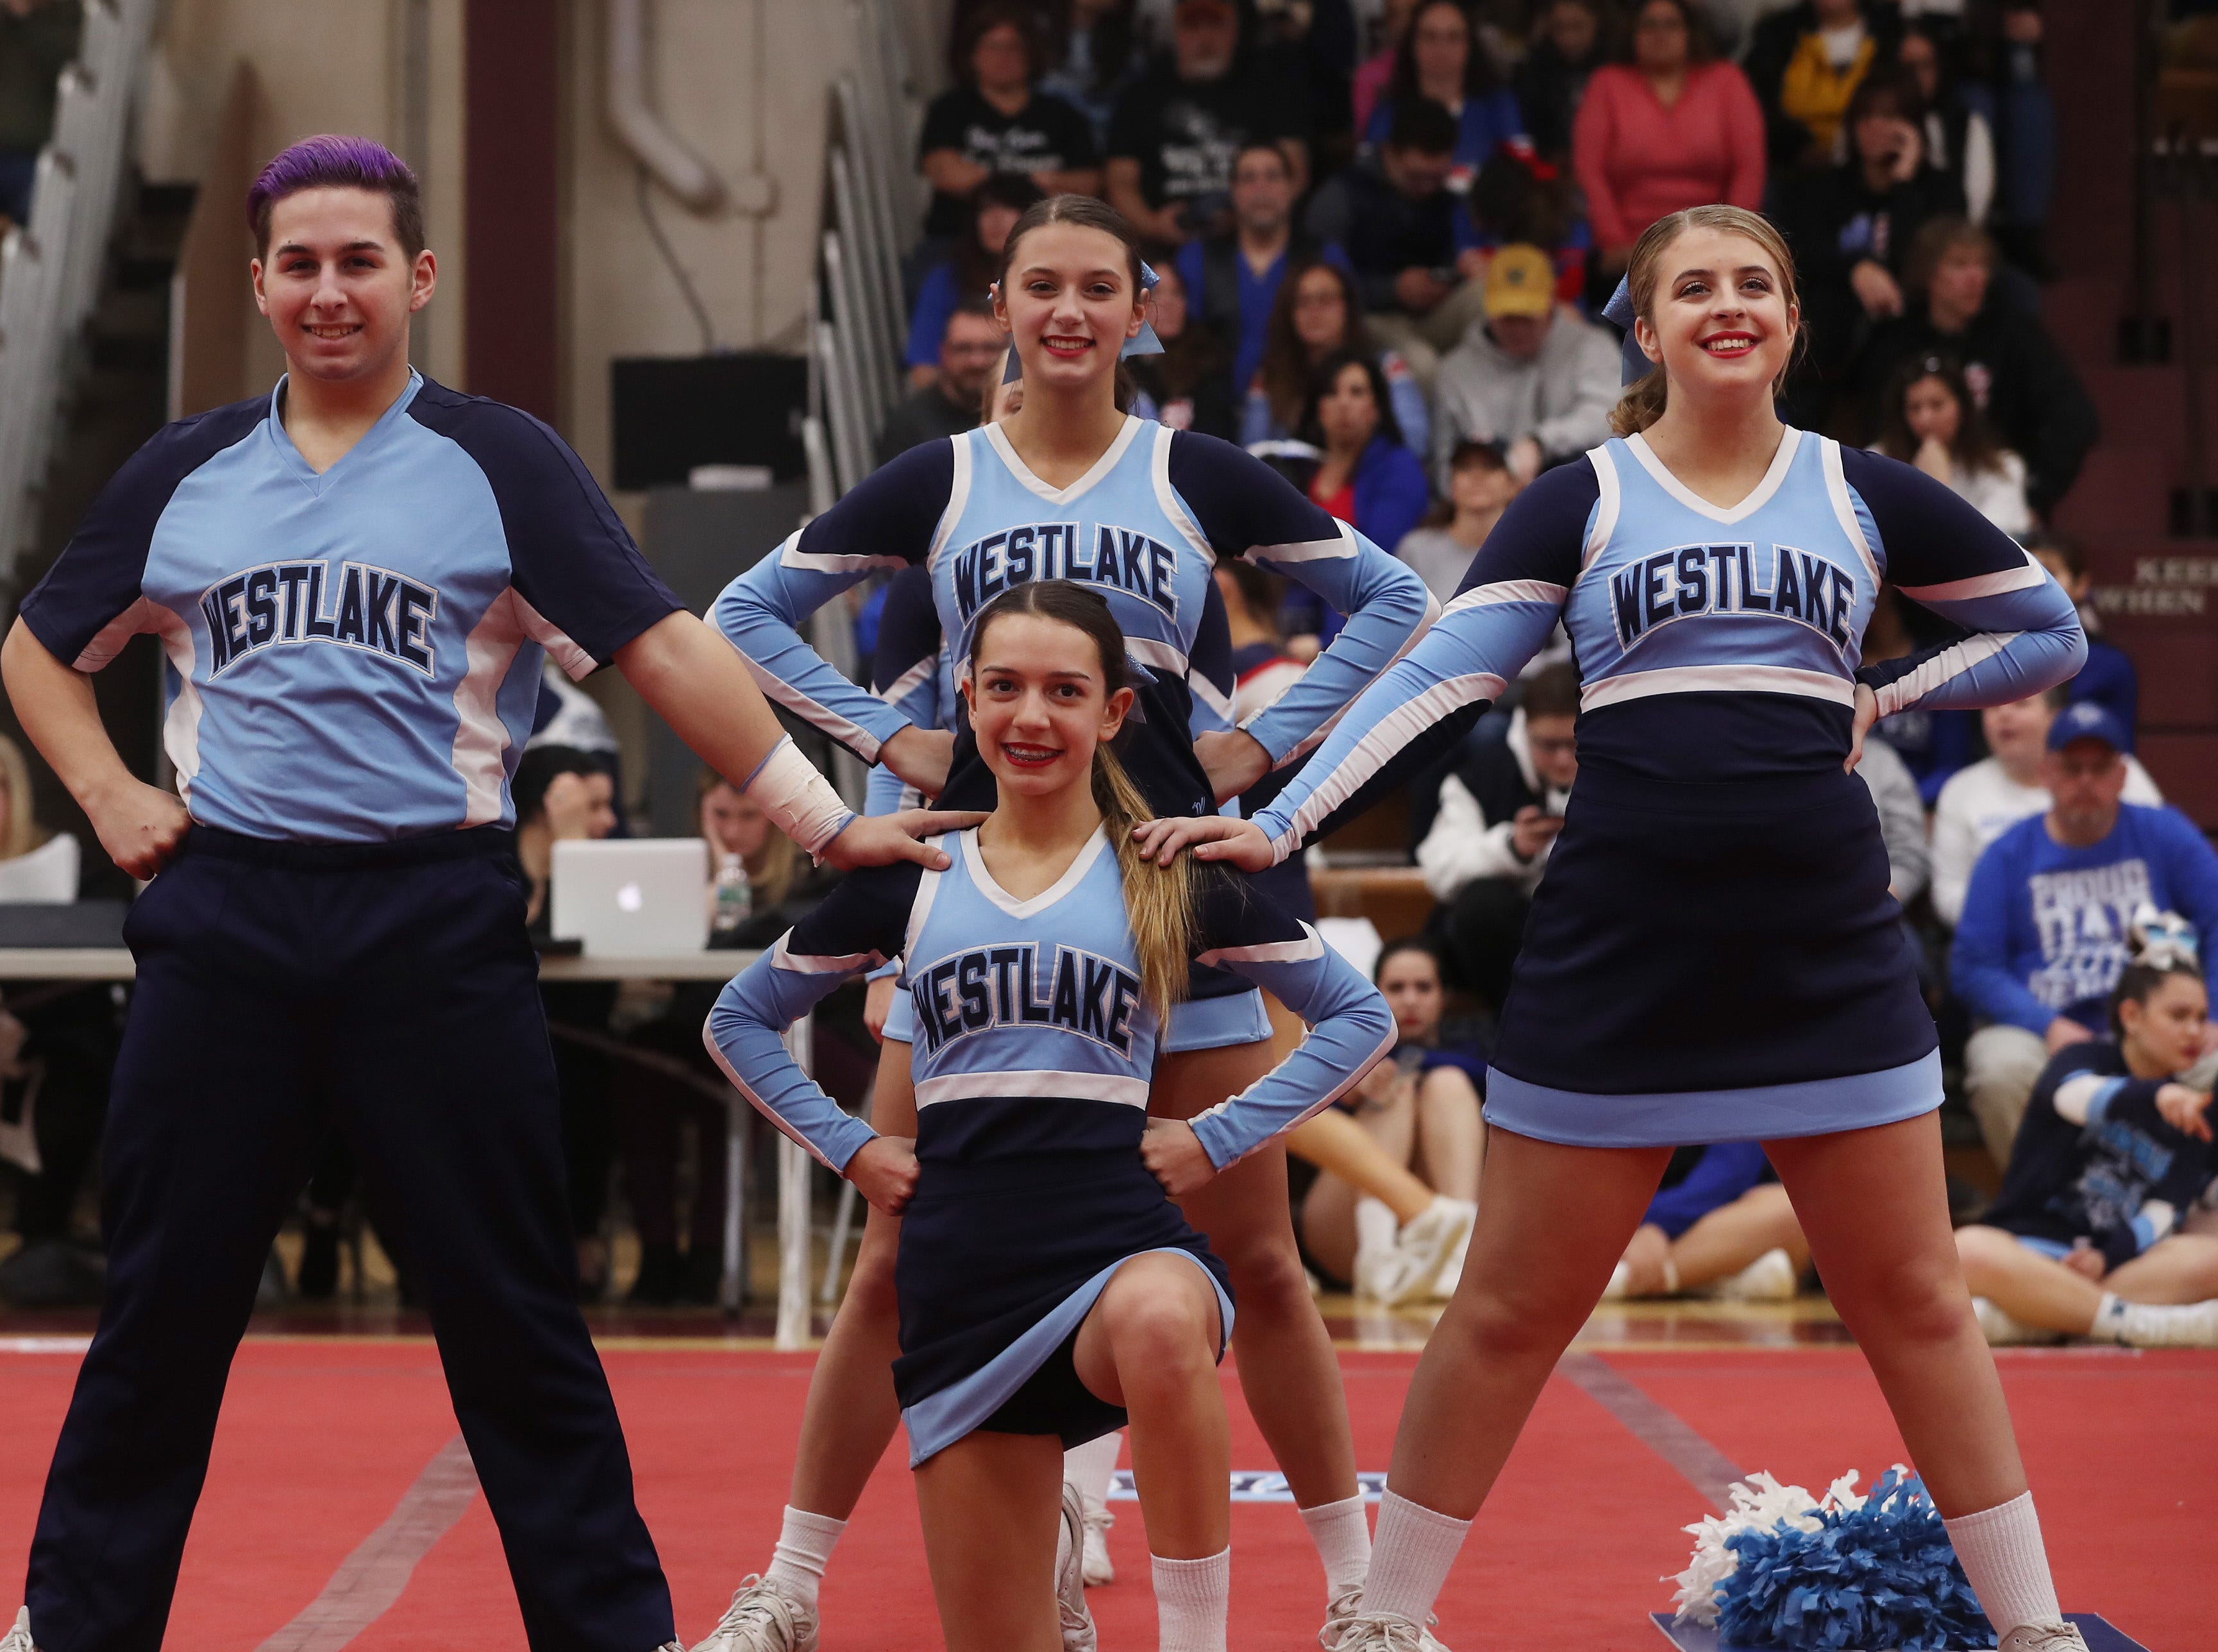 Westlake High School competes during the Section 1 cheerleading championships at Arlington High School in Freedom Plains Feb. 16, 2019.